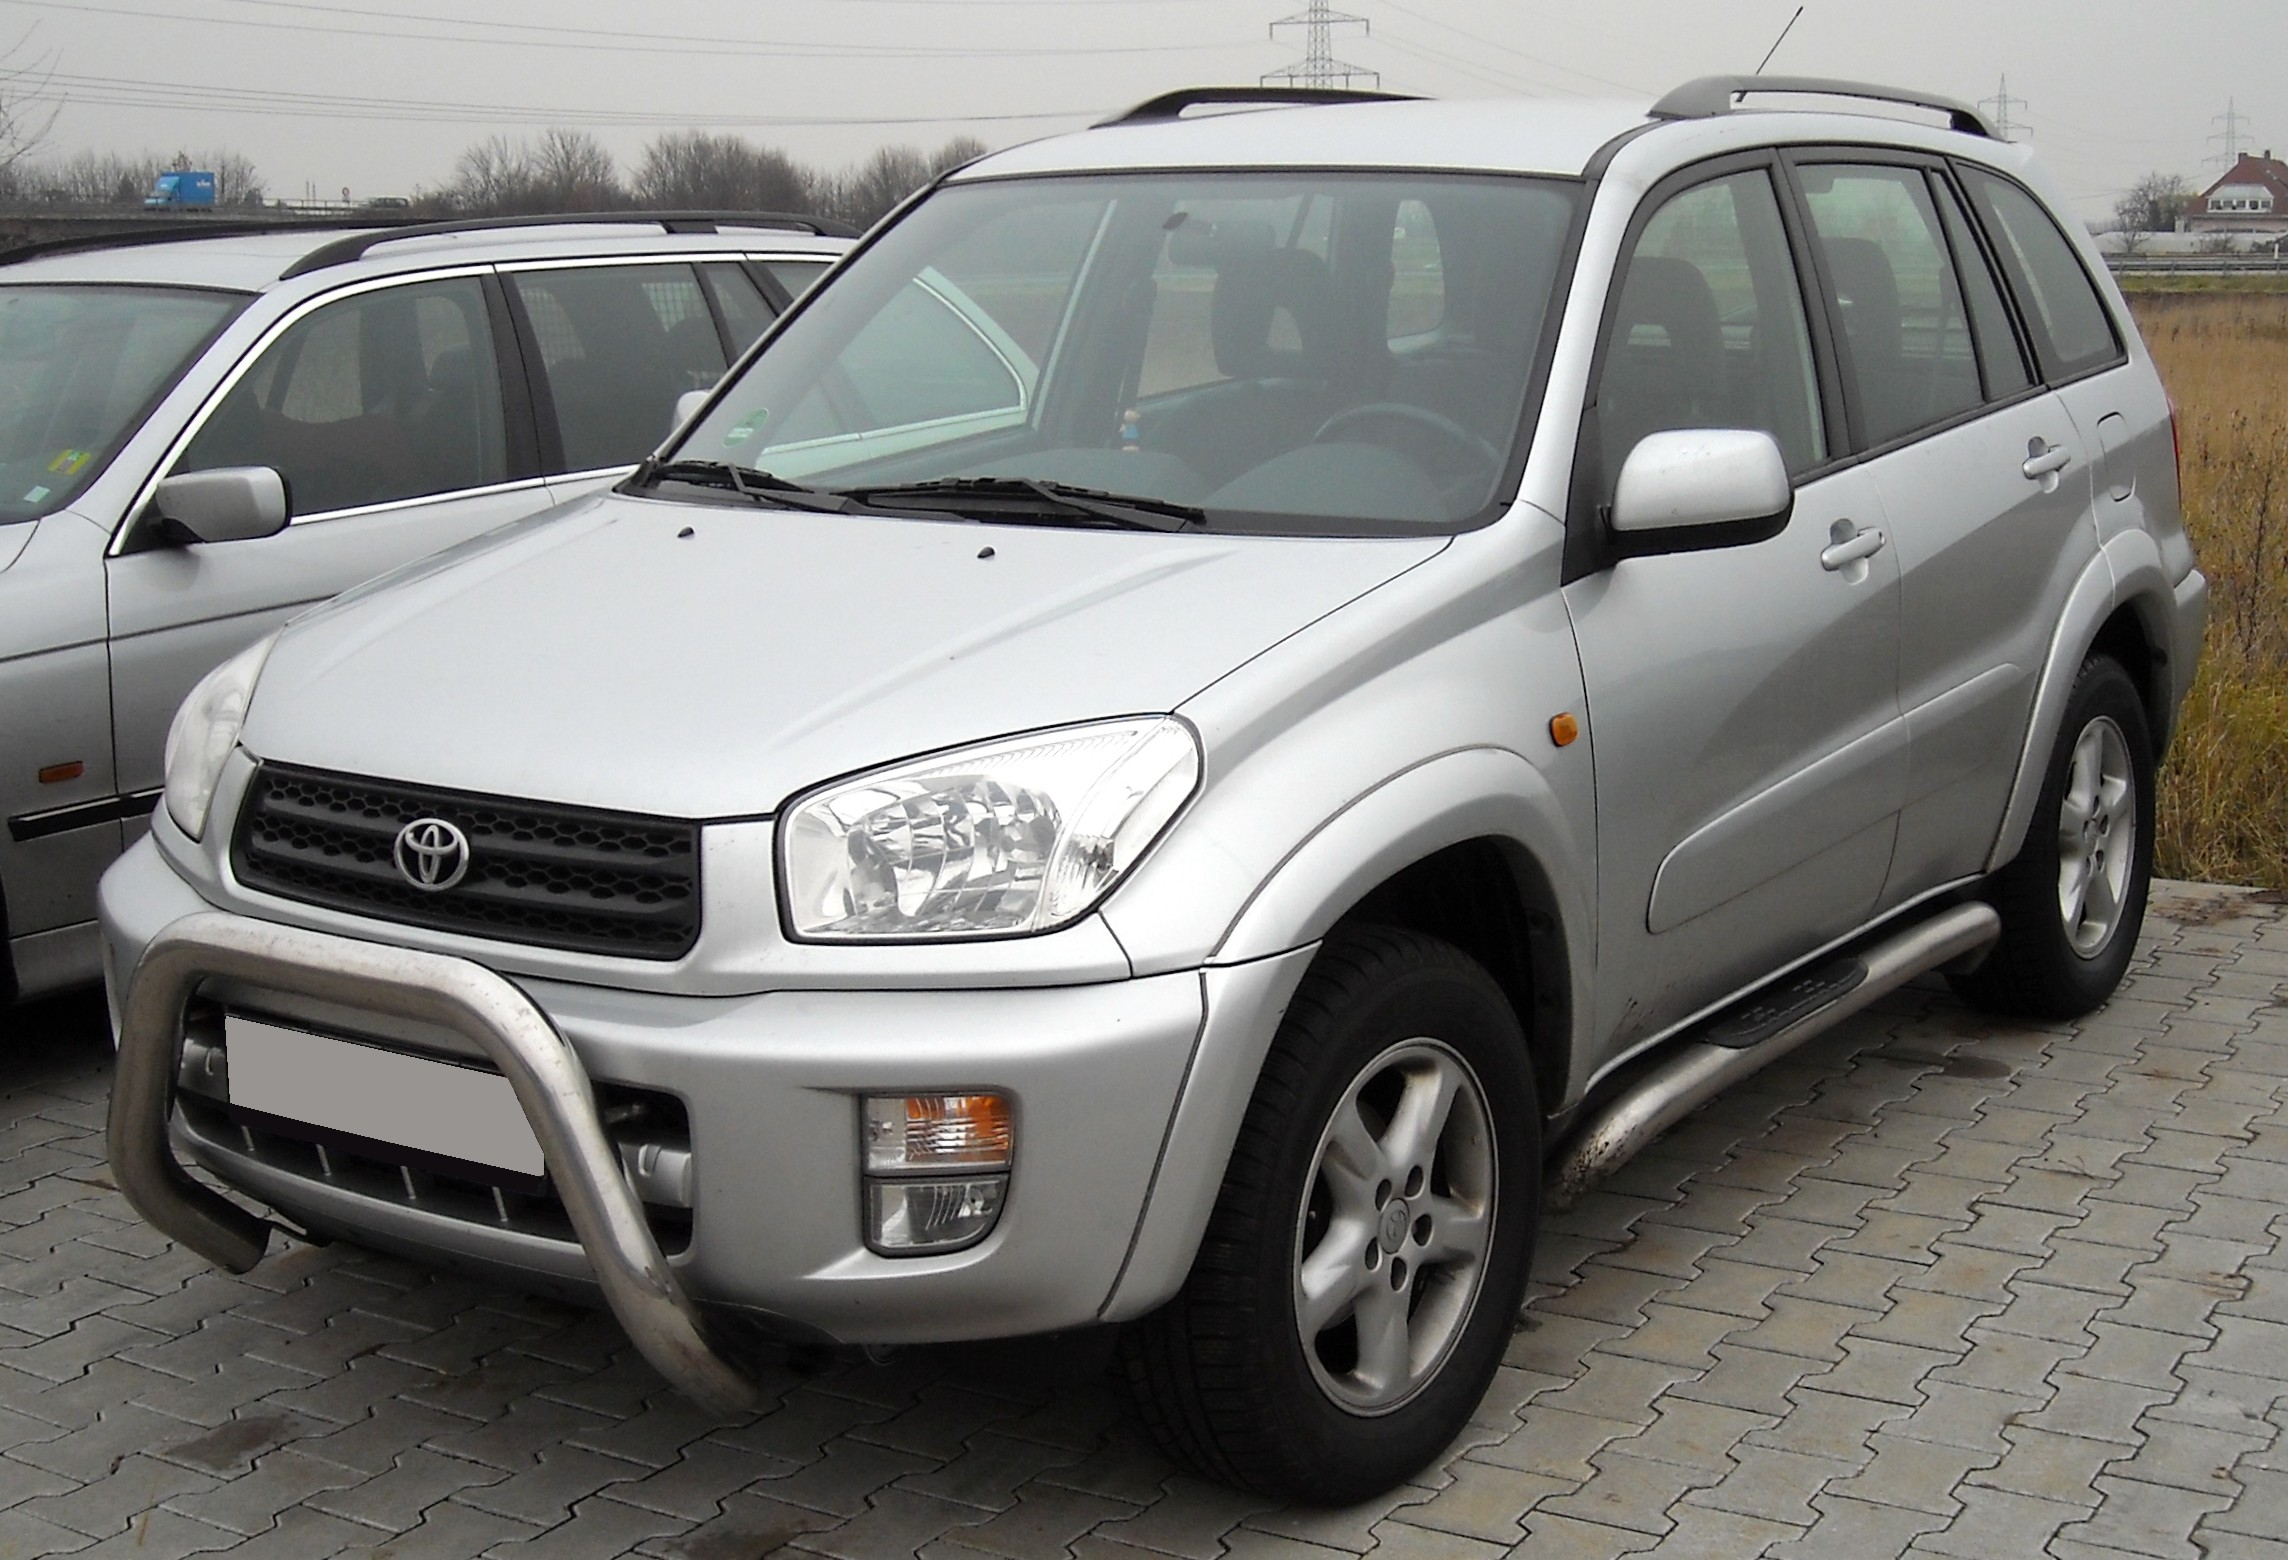 2001 toyota rav 4 ii pictures information and specs. Black Bedroom Furniture Sets. Home Design Ideas